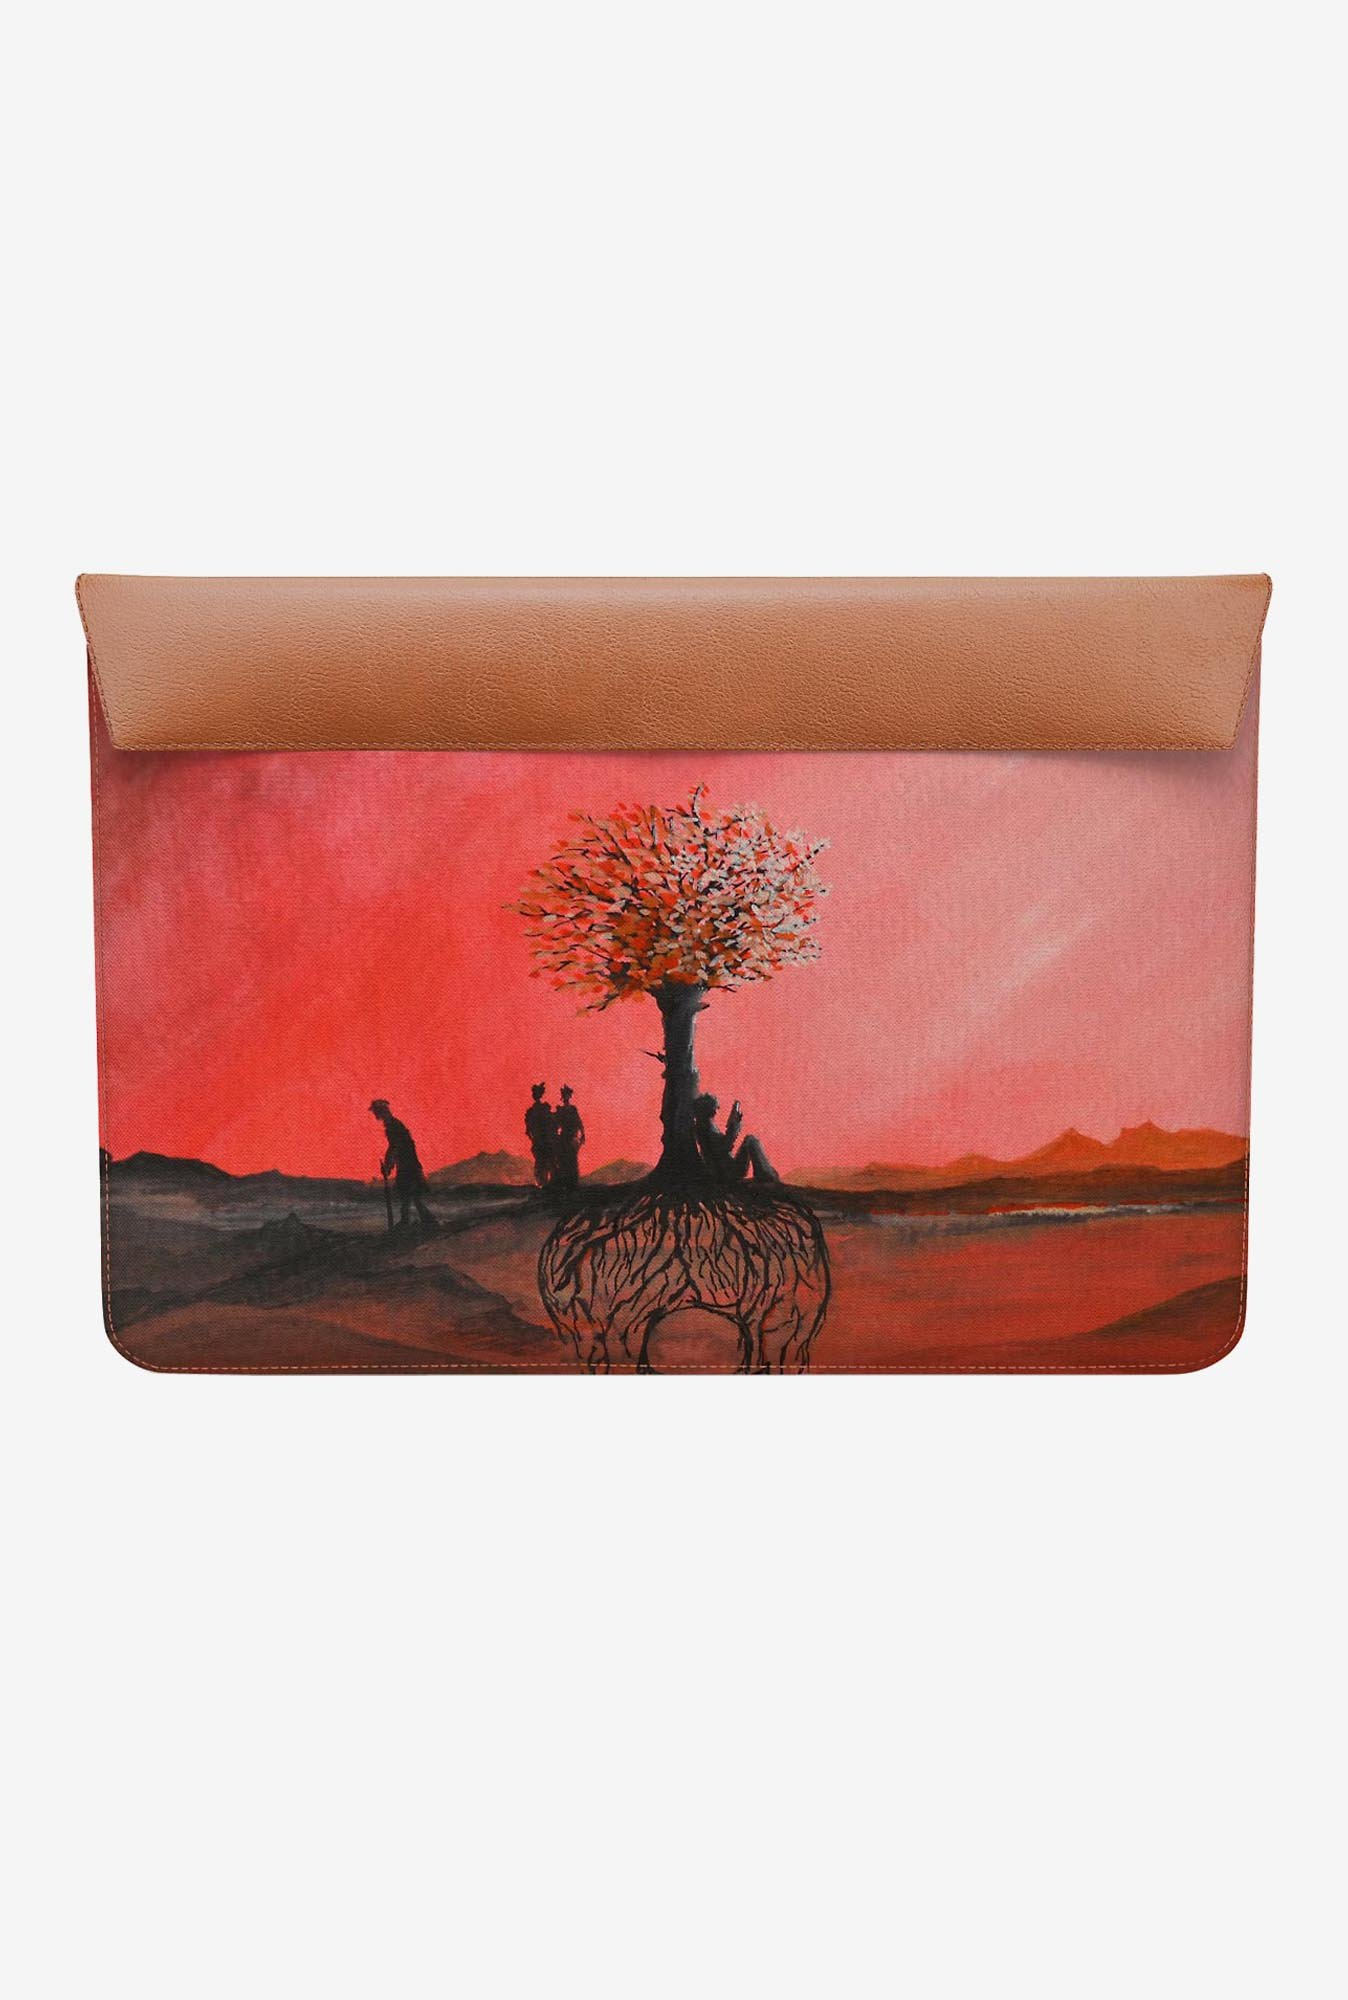 DailyObjects Songs From Tree MacBook Air 13 Envelope Sleeve